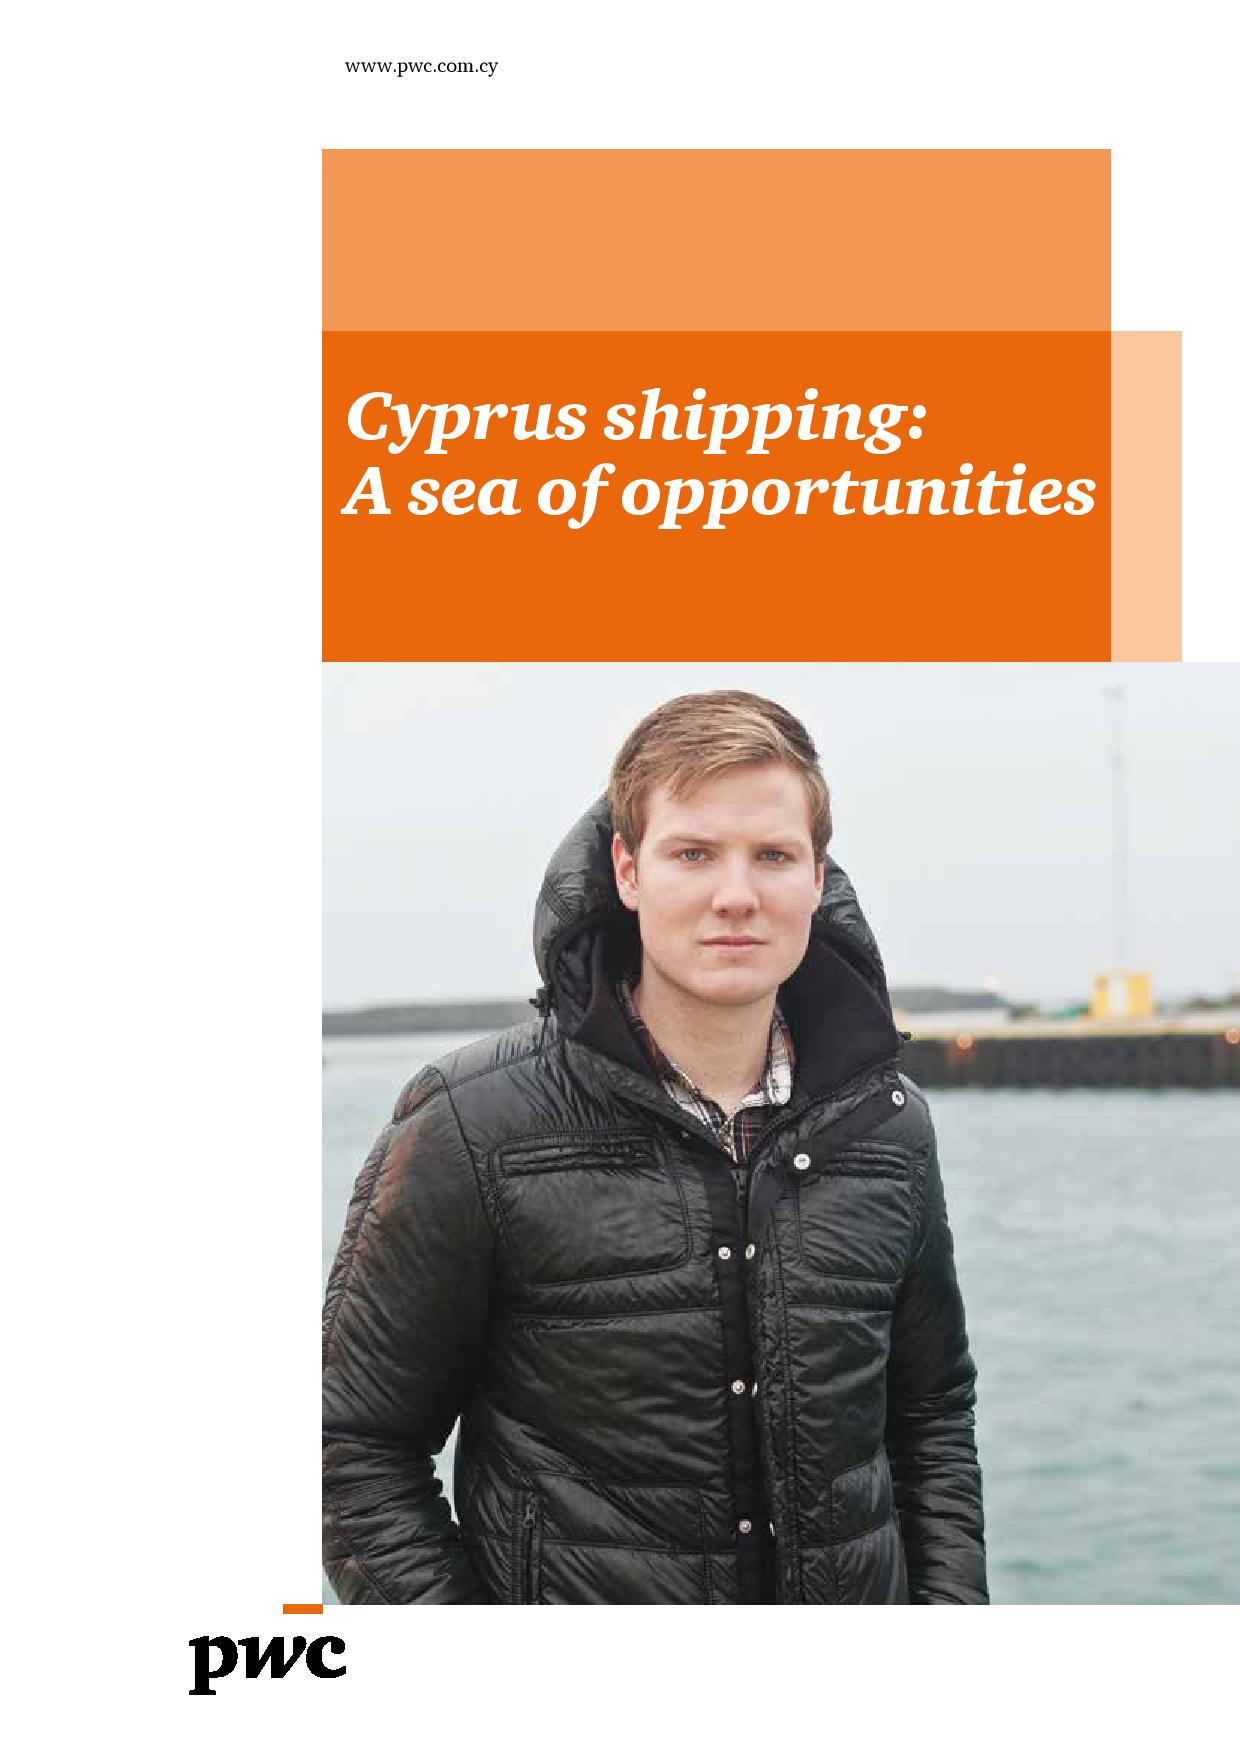 Cyprus shipping: a sea of opportunities